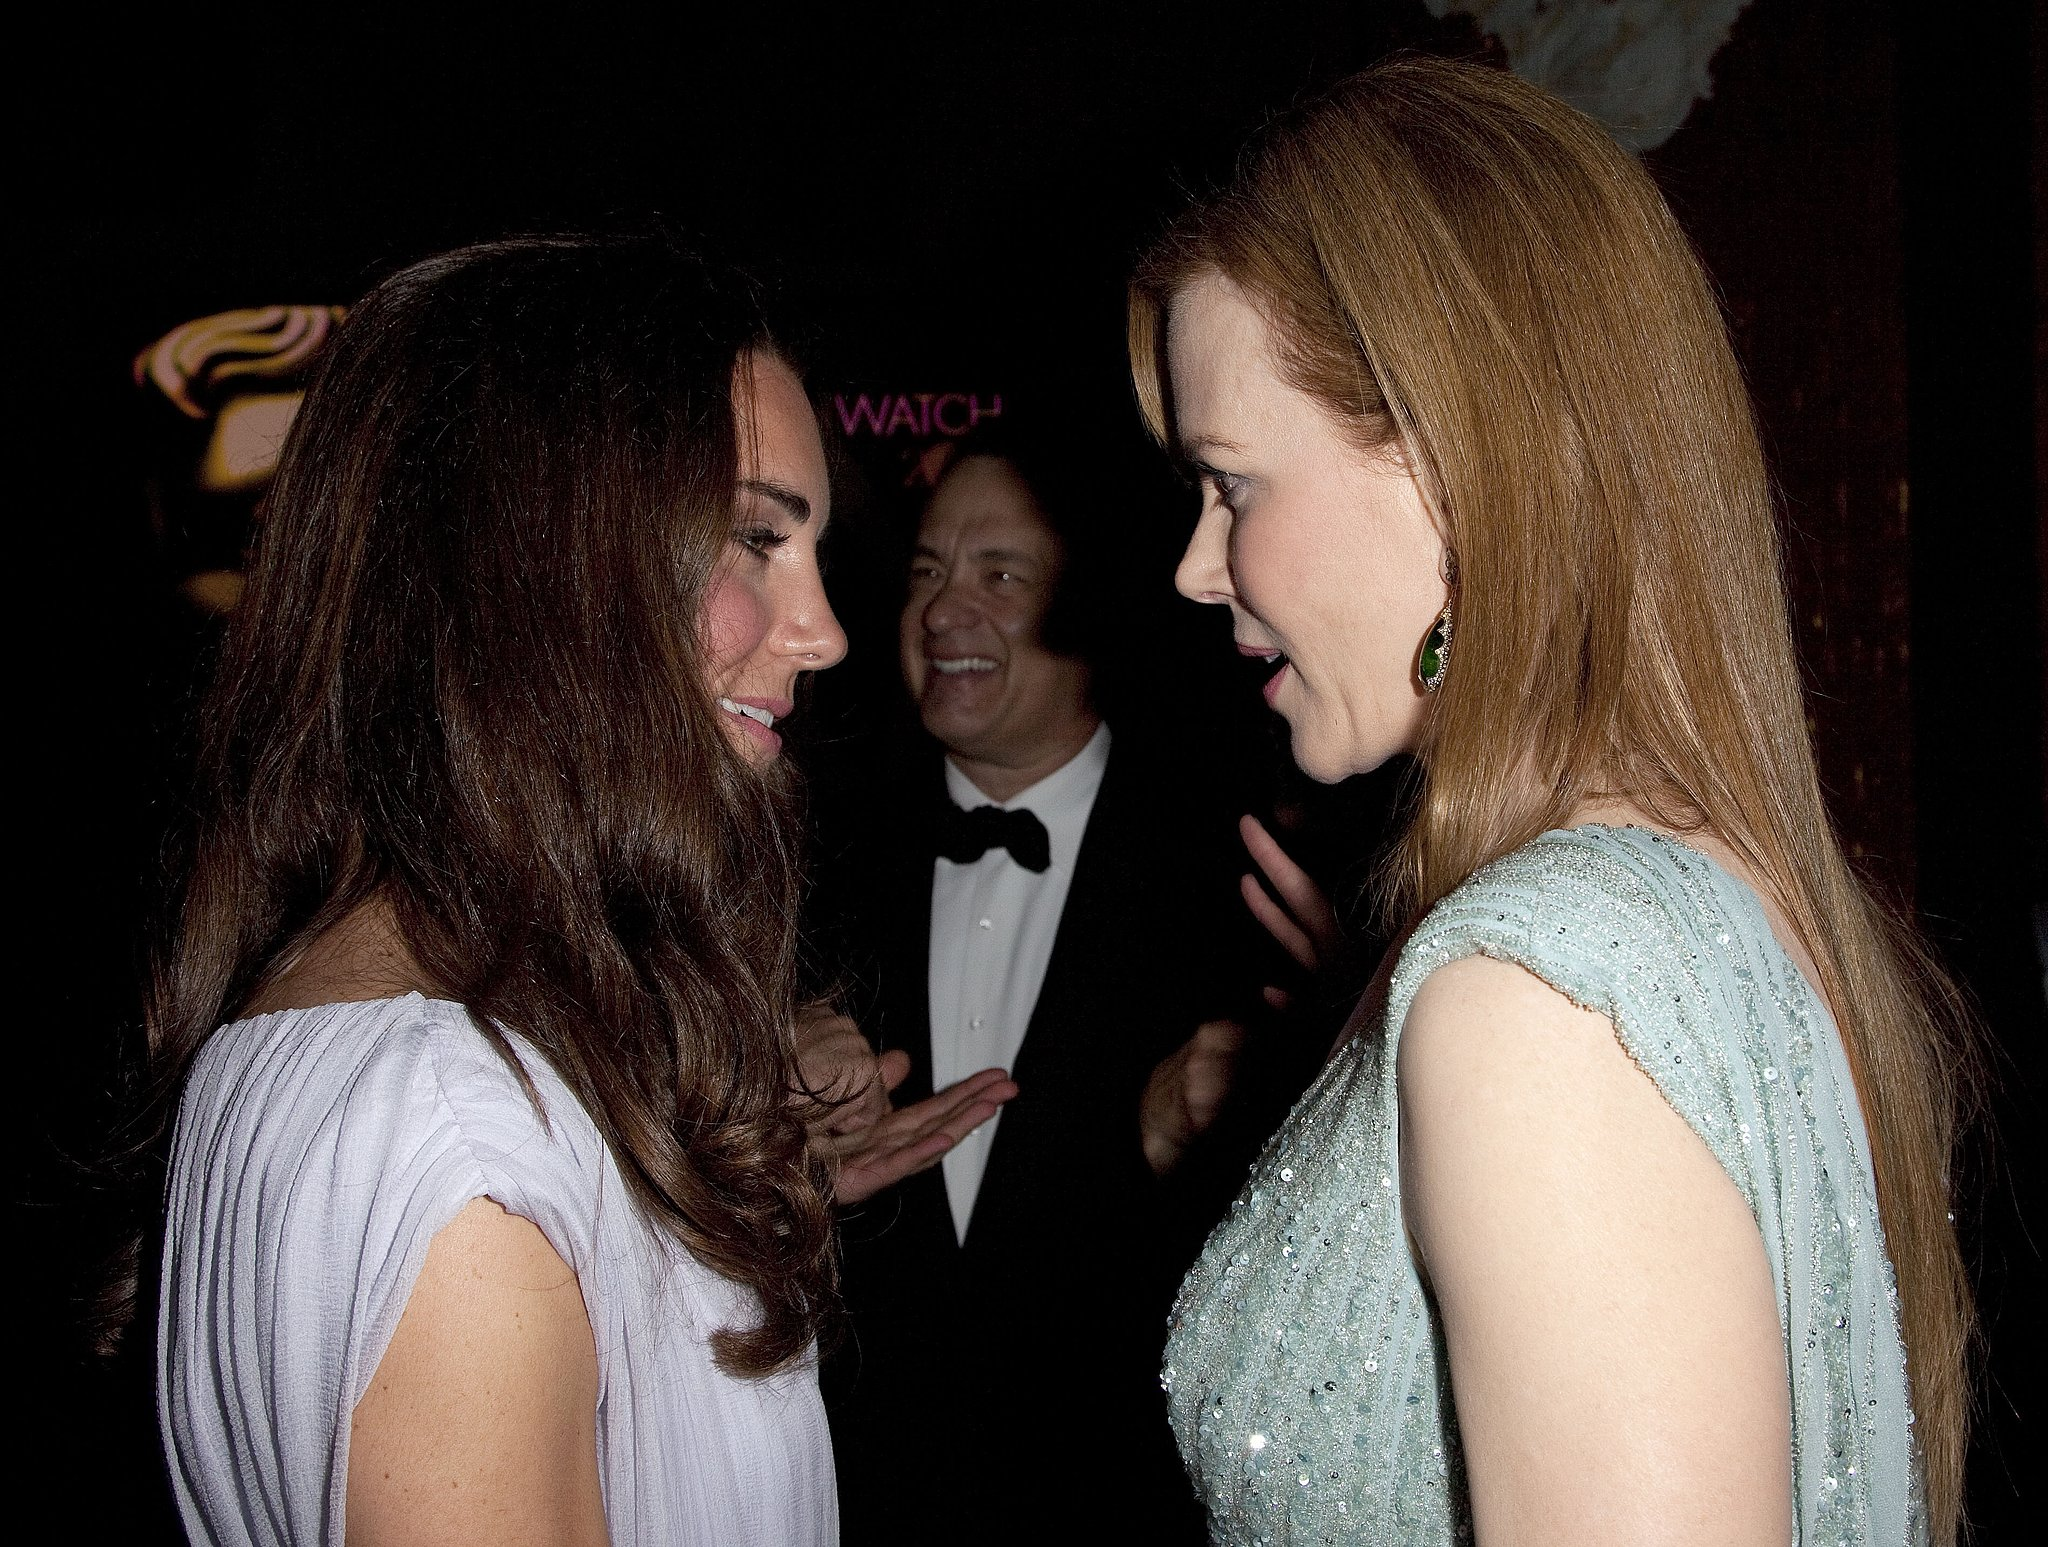 Nicole Kidman and Kate Middleton spoke at the 2011 BAFTA Brits to Watch Event in LA in July 2011.